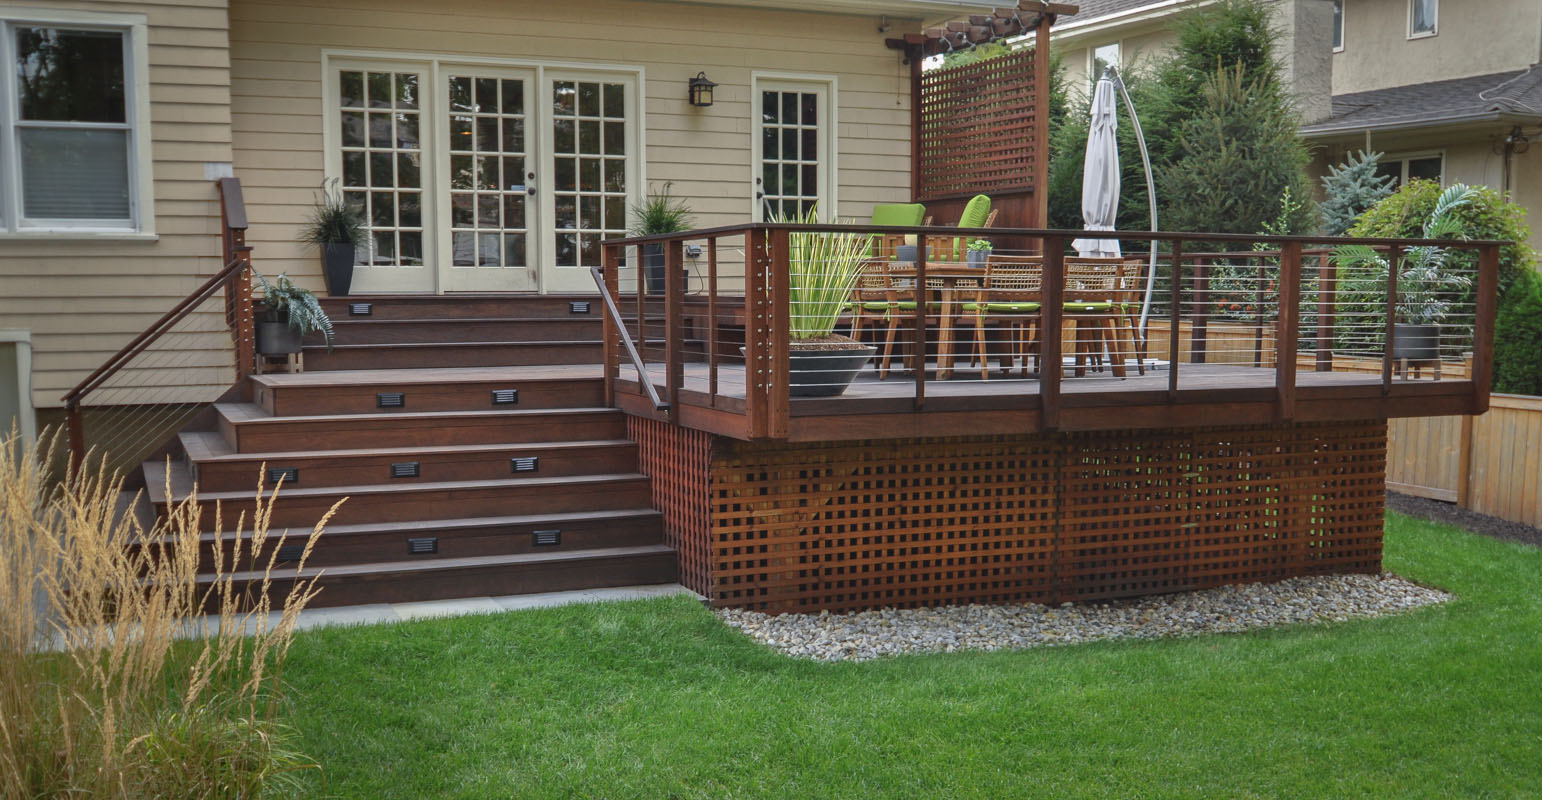 before and after landscape pictures, after, deck design nj, ipe deck